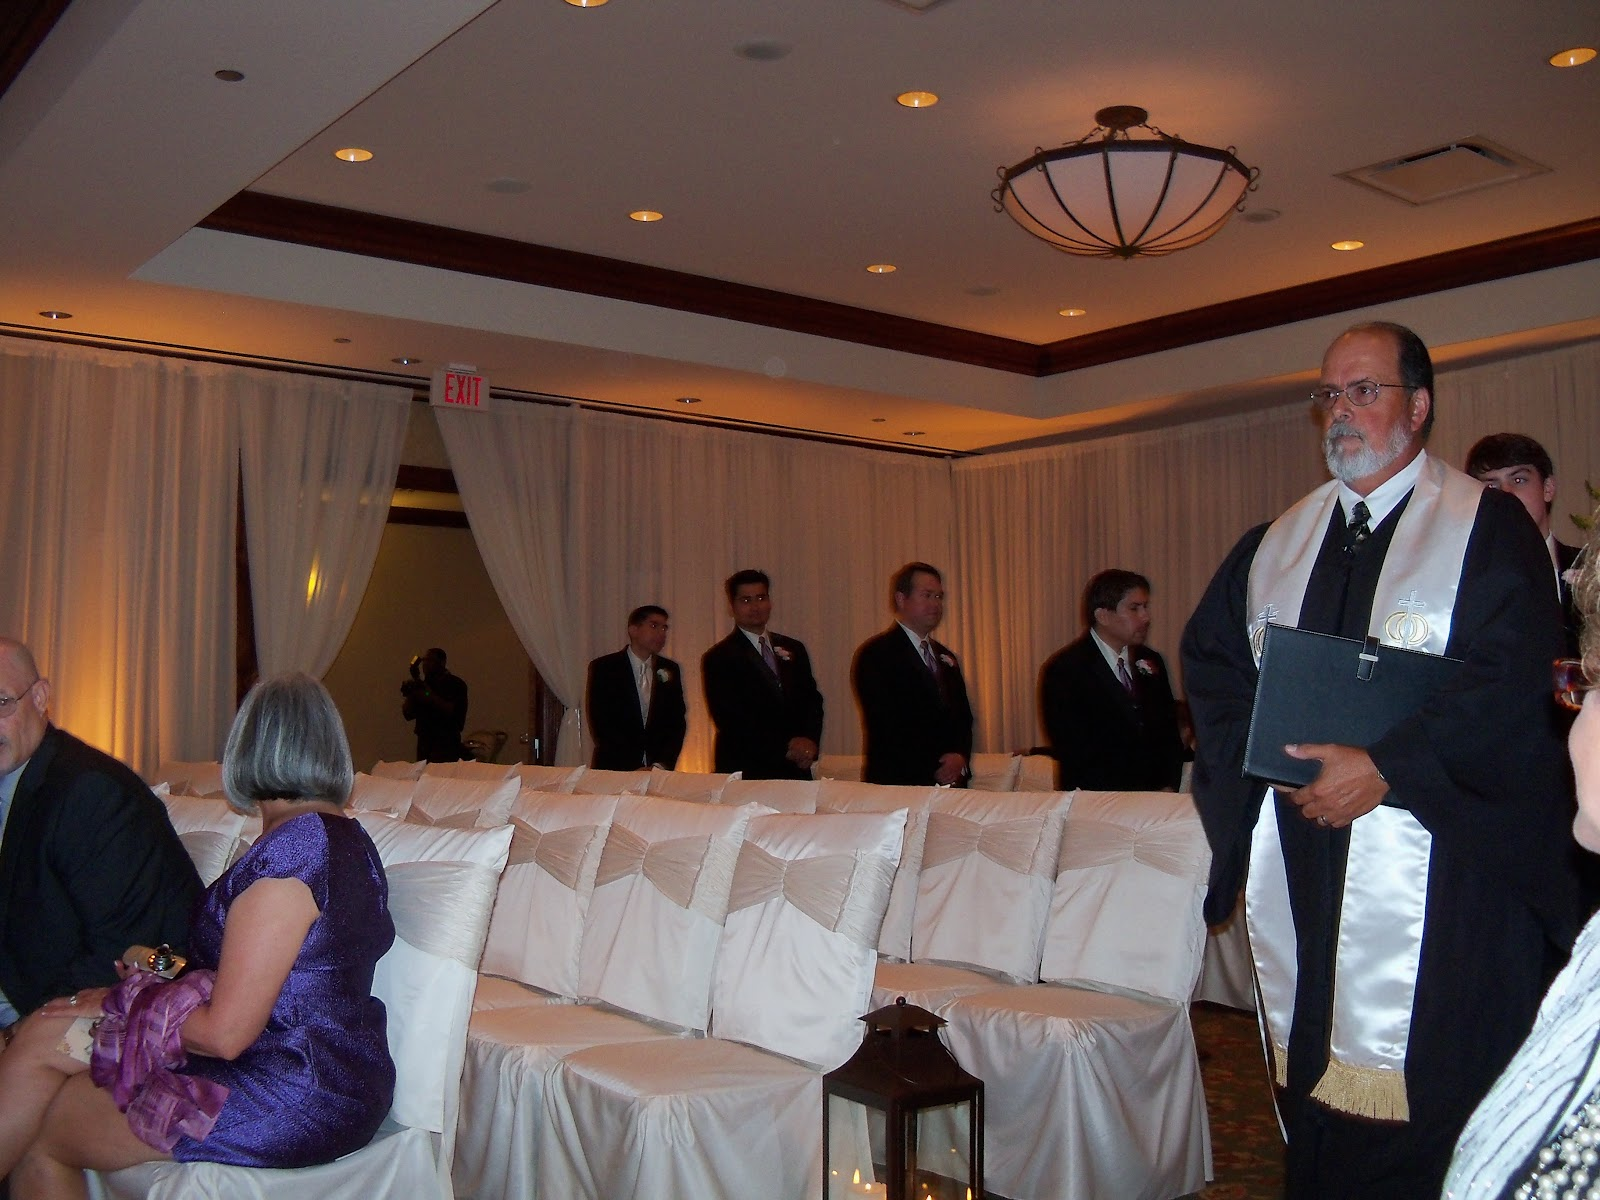 Megan Neal and Mark Suarez wedding - 100_8287.JPG